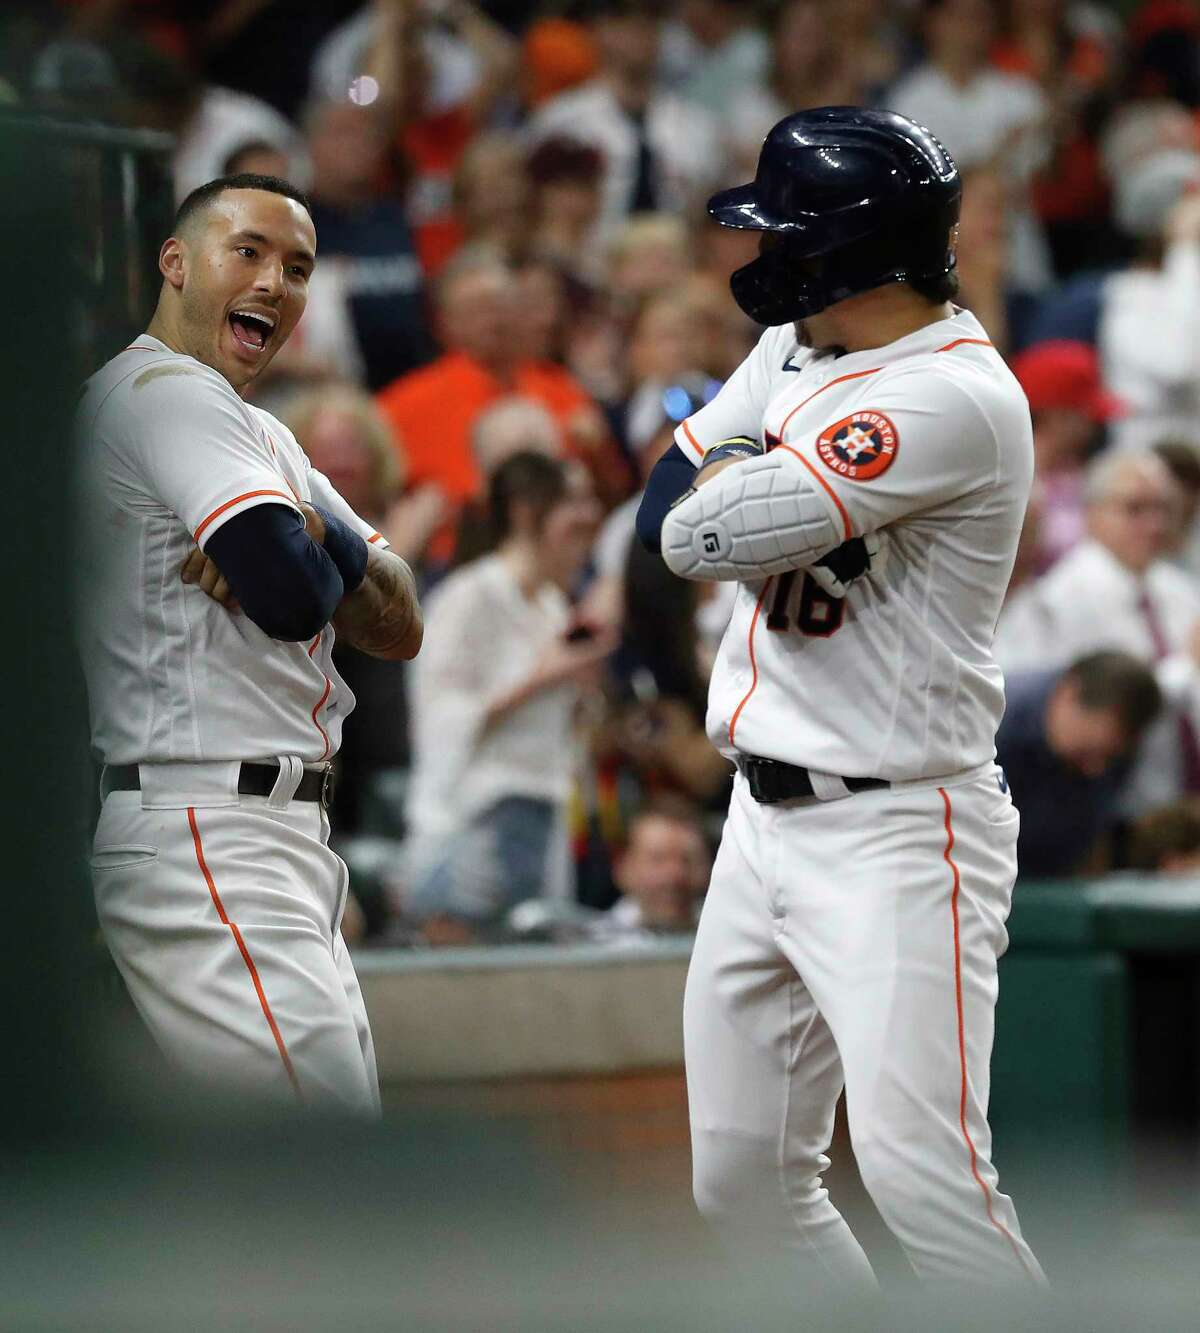 Houston Astros Aledmys Diaz (16) celebrates with Carlos Correa after hitting a home run off of Los Angeles Dodgers Nate Jones during the seventh inning of an MLB baseball game at Minute Maid Park, Wednesday, May 26, 2021, in Houston.